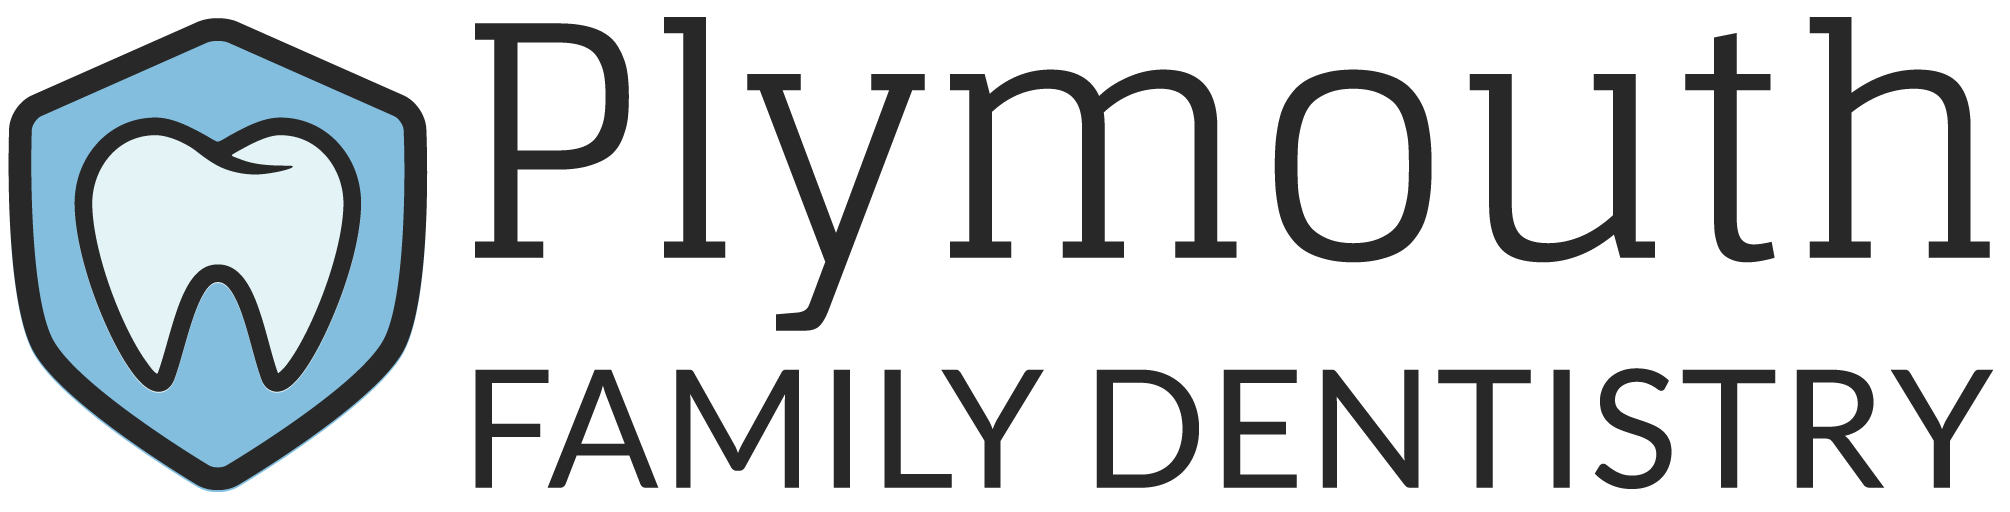 Plymouth Family Dentistry